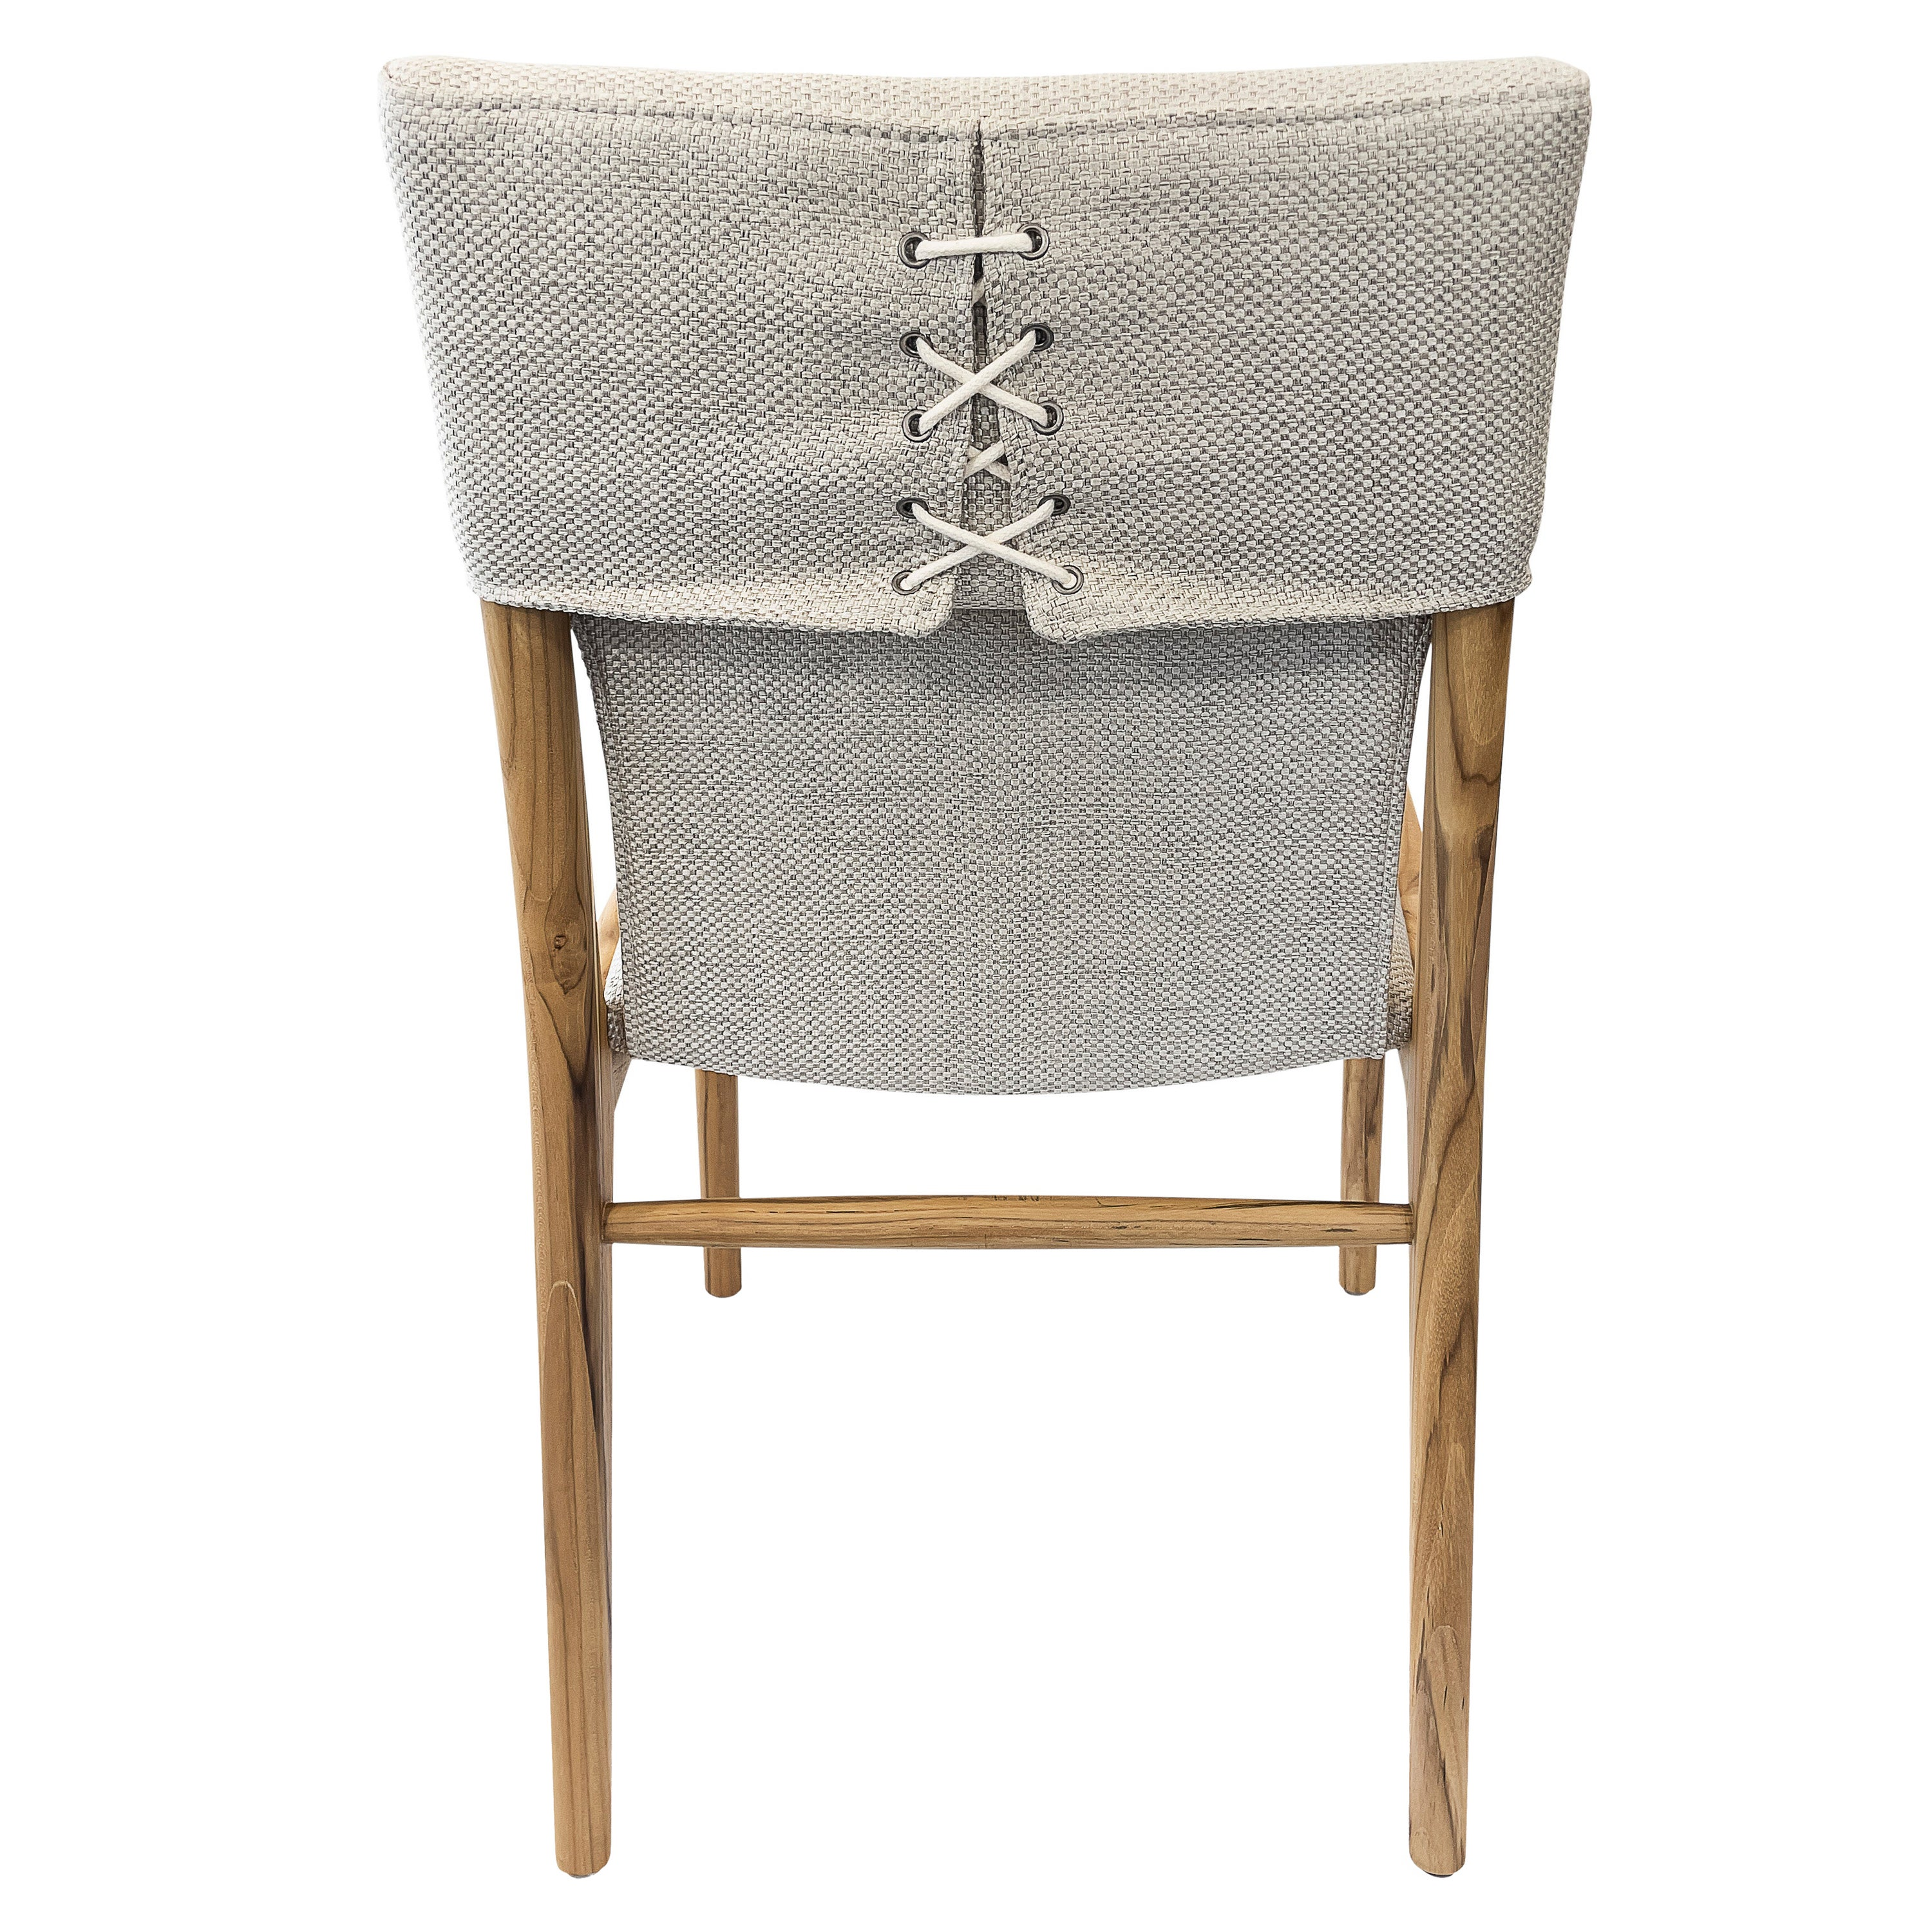 Tress Dining Chair in Light Fabric and Teak Finish